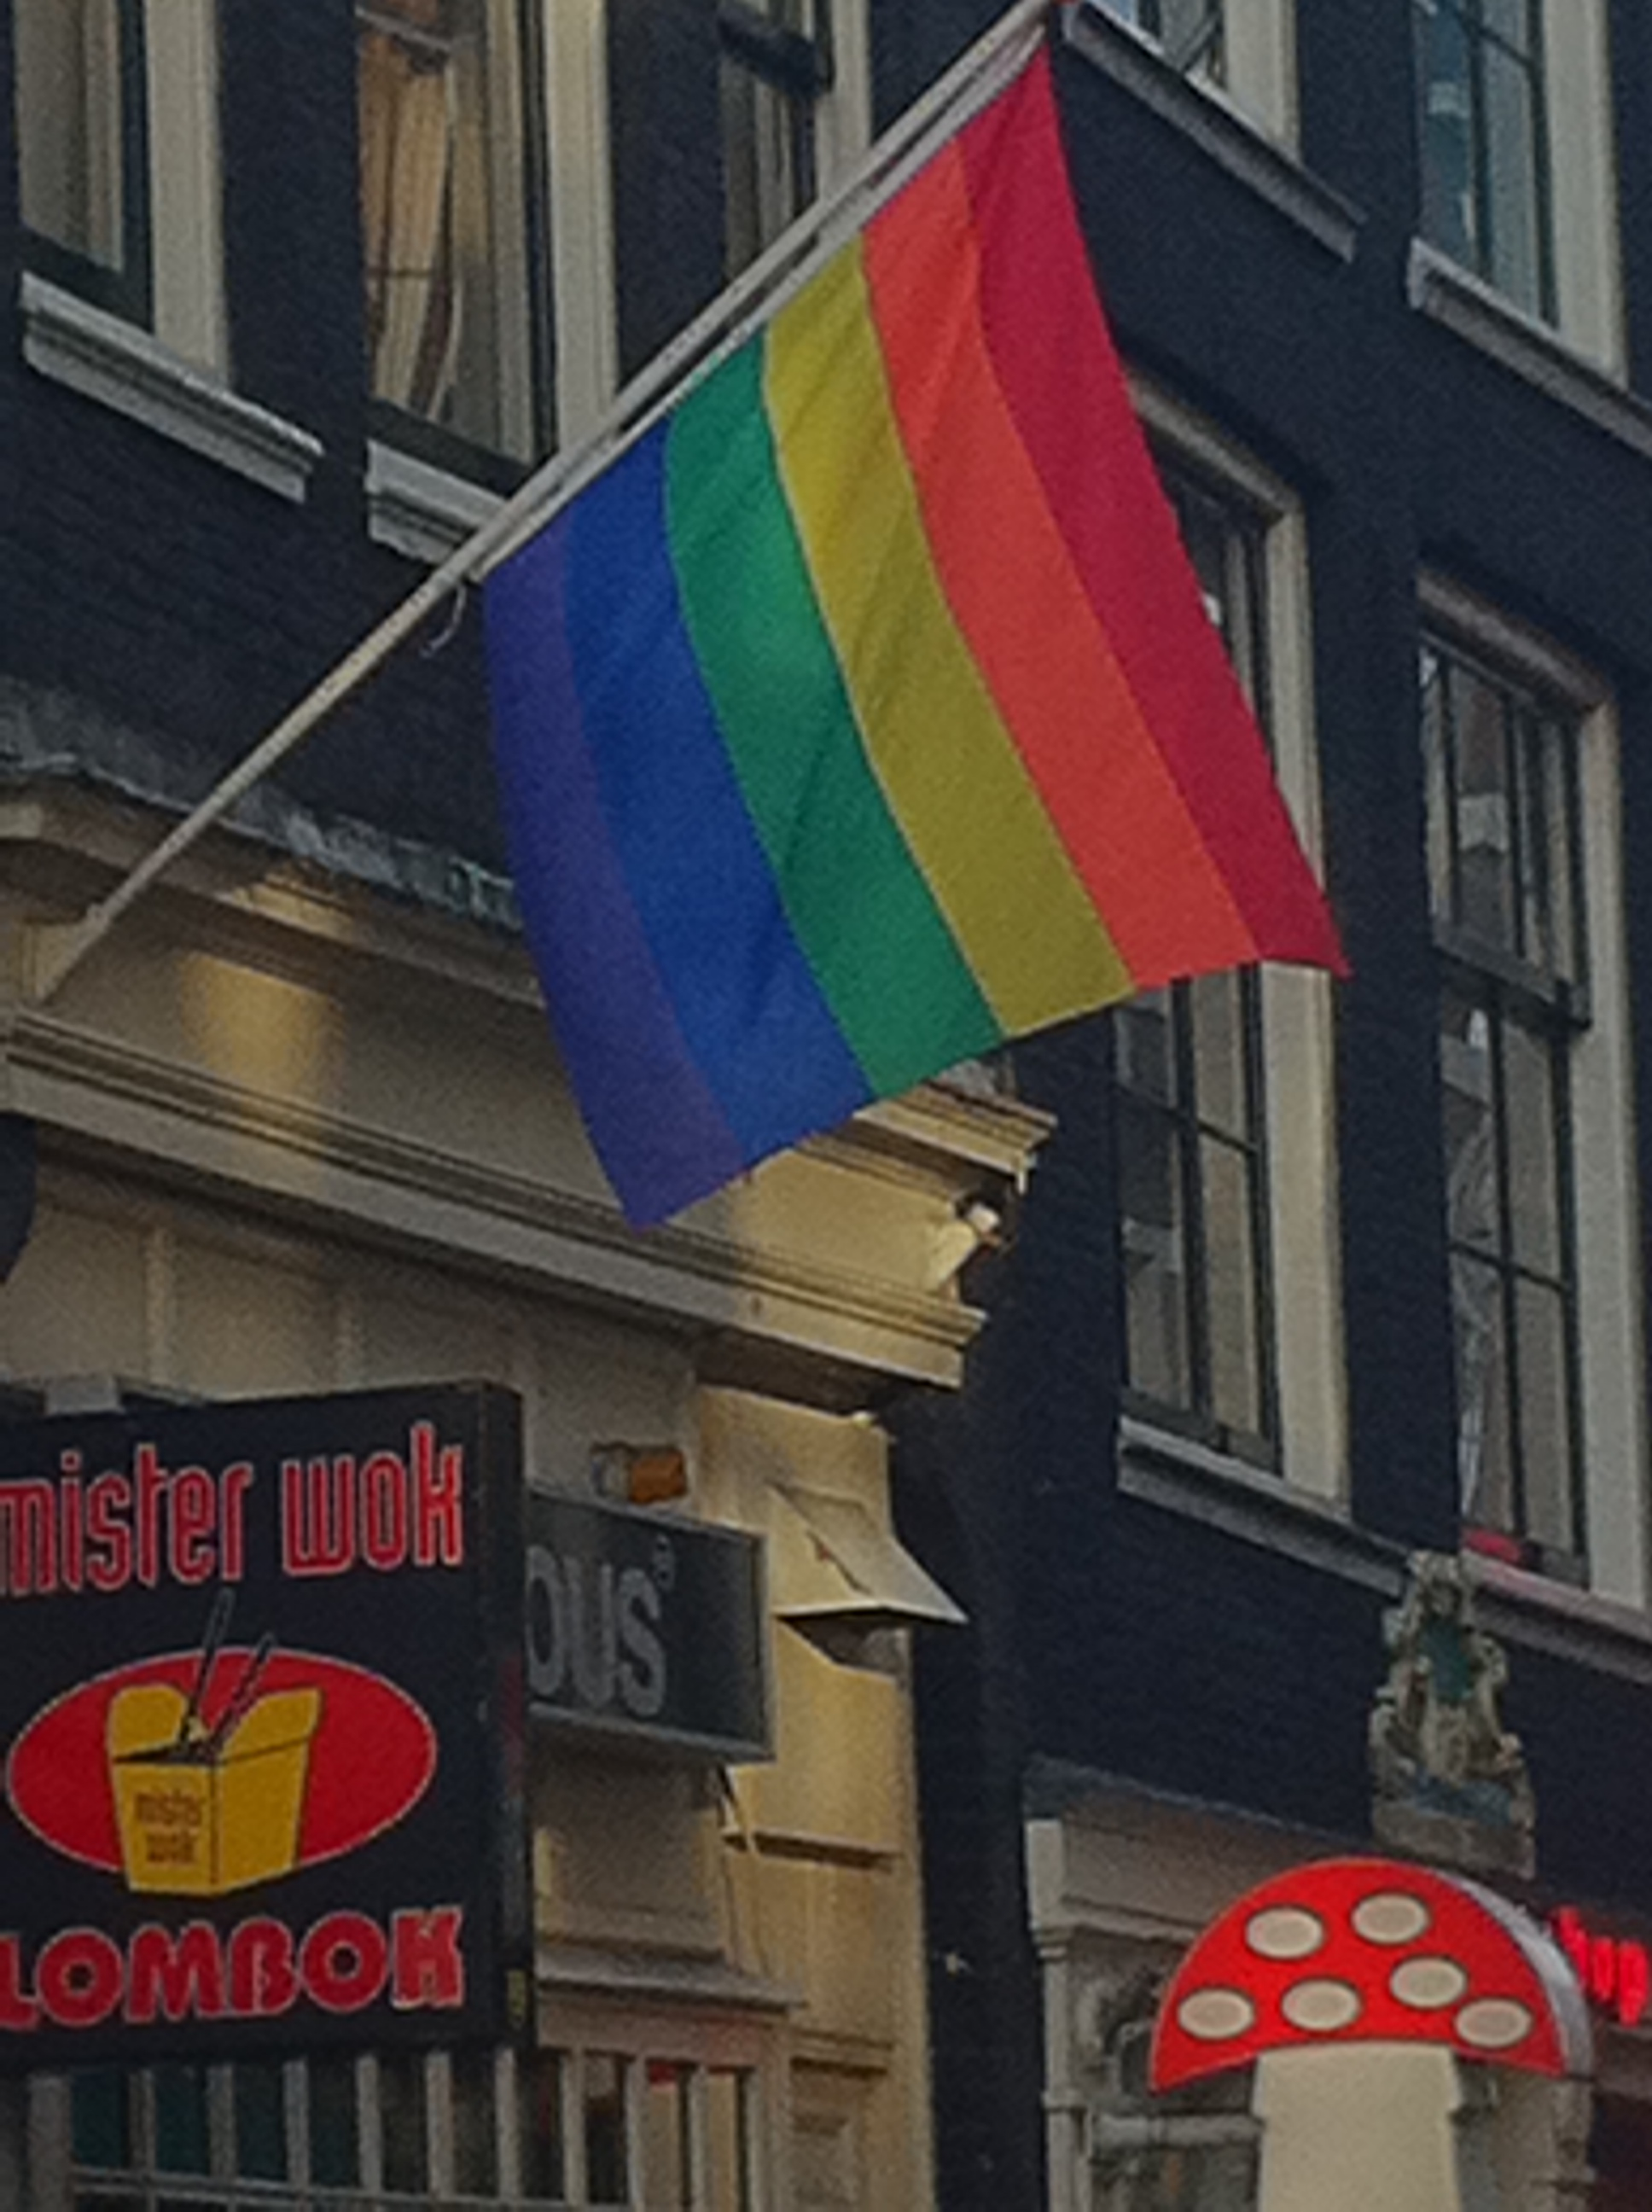 Summer Program - Social Justice | Experiment in International Living: The Netherlands - LGBTQ+ Rights and Advocacy